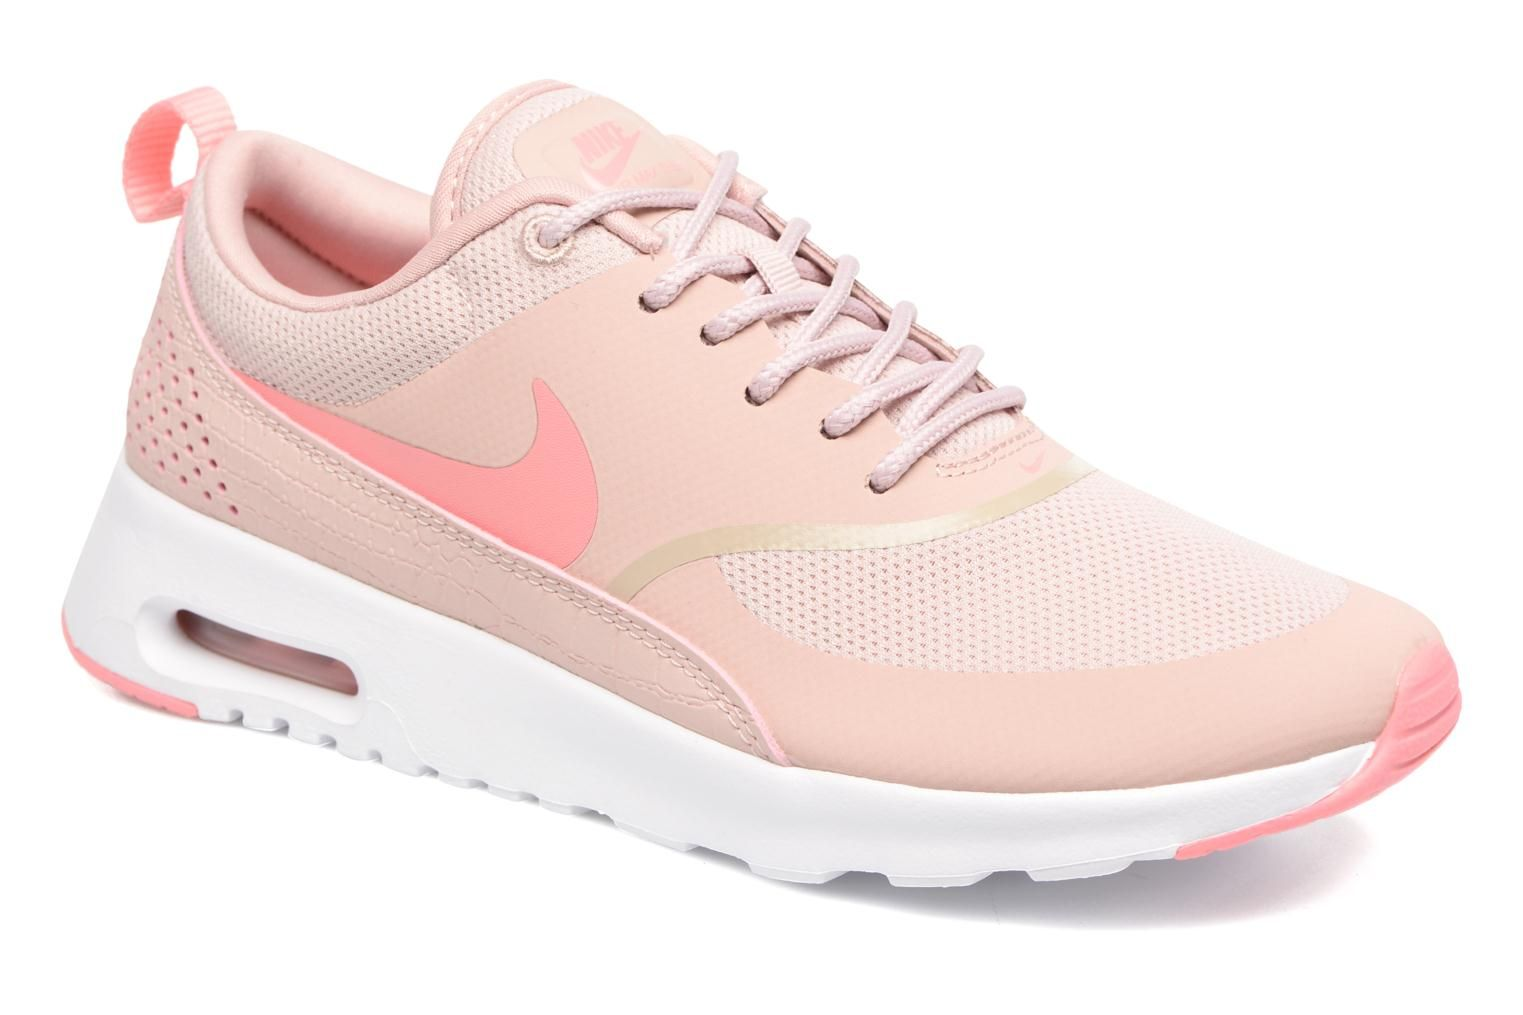 finest selection f390b 81e80 Wmns Nike Air Max Thea by Nike. ¡Envío GRATIS en 48hr! Deportivas Nike ( Mujer), disponible en 36 38 40 42 , deportivas, sport, deporte, deportivo,  fitness, ...